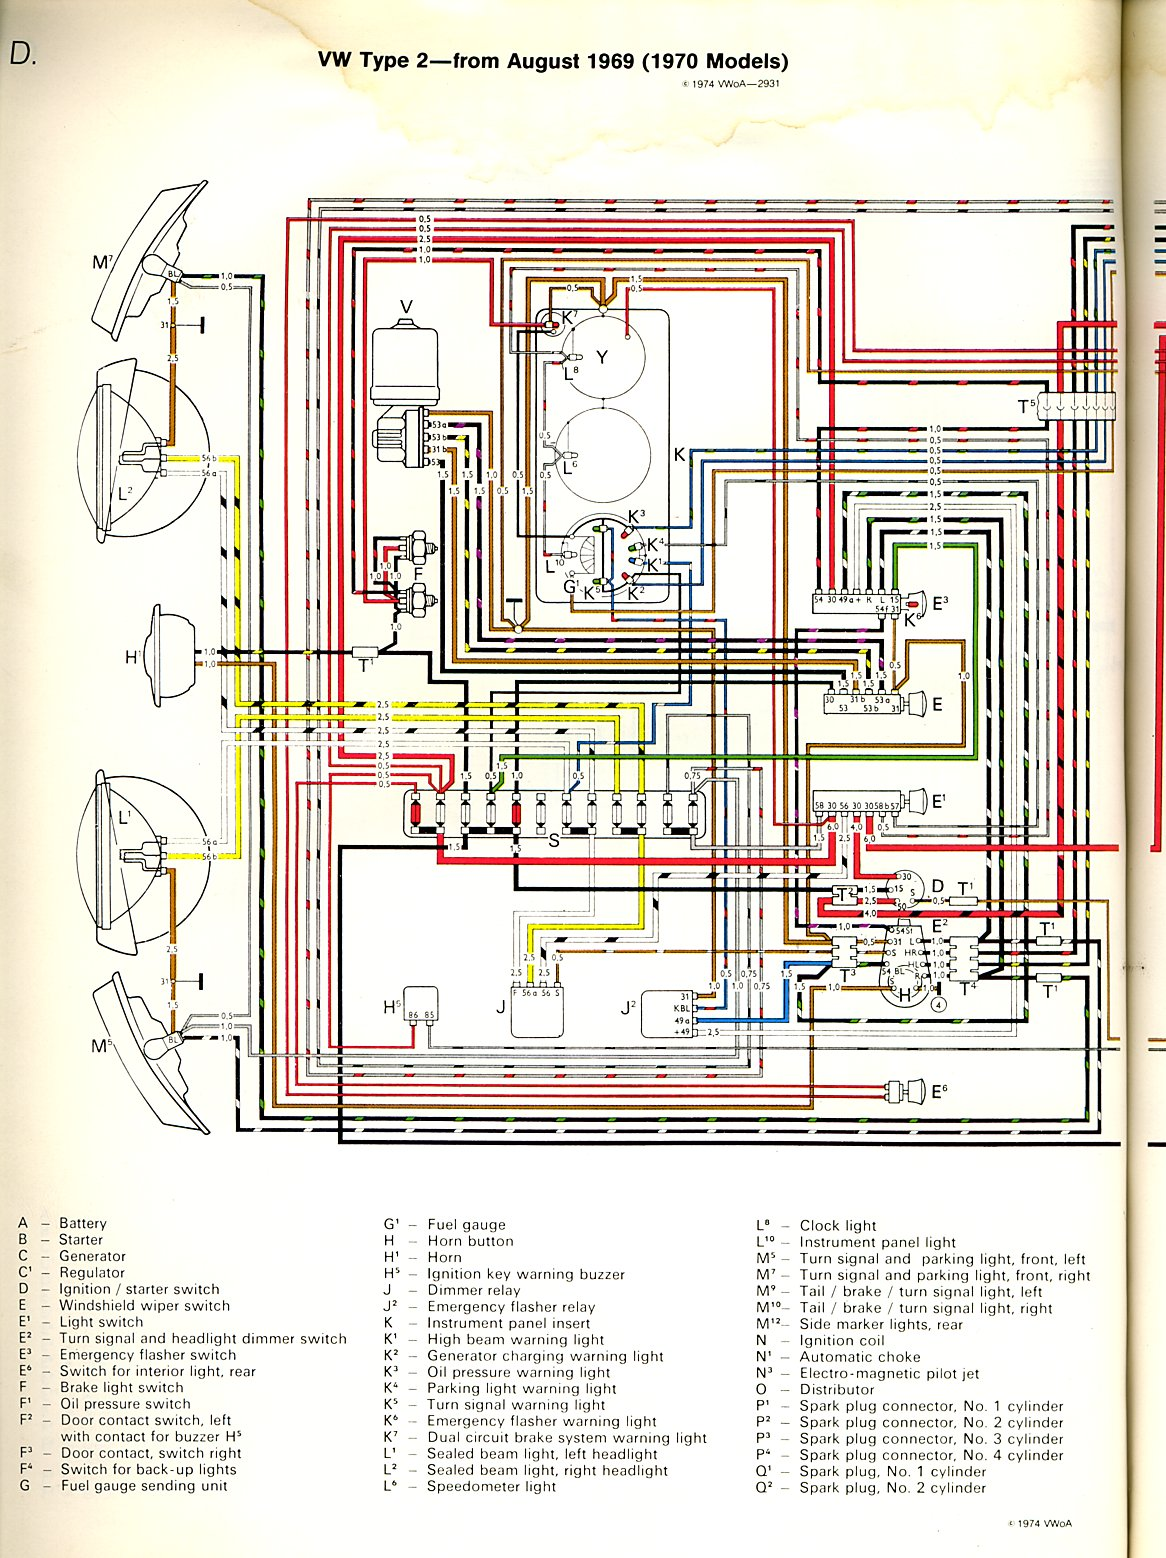 baybus_70a bus wiring diagram vw wiring harness diagram \u2022 wiring diagrams j 1971 vw bus wiring diagram at mr168.co